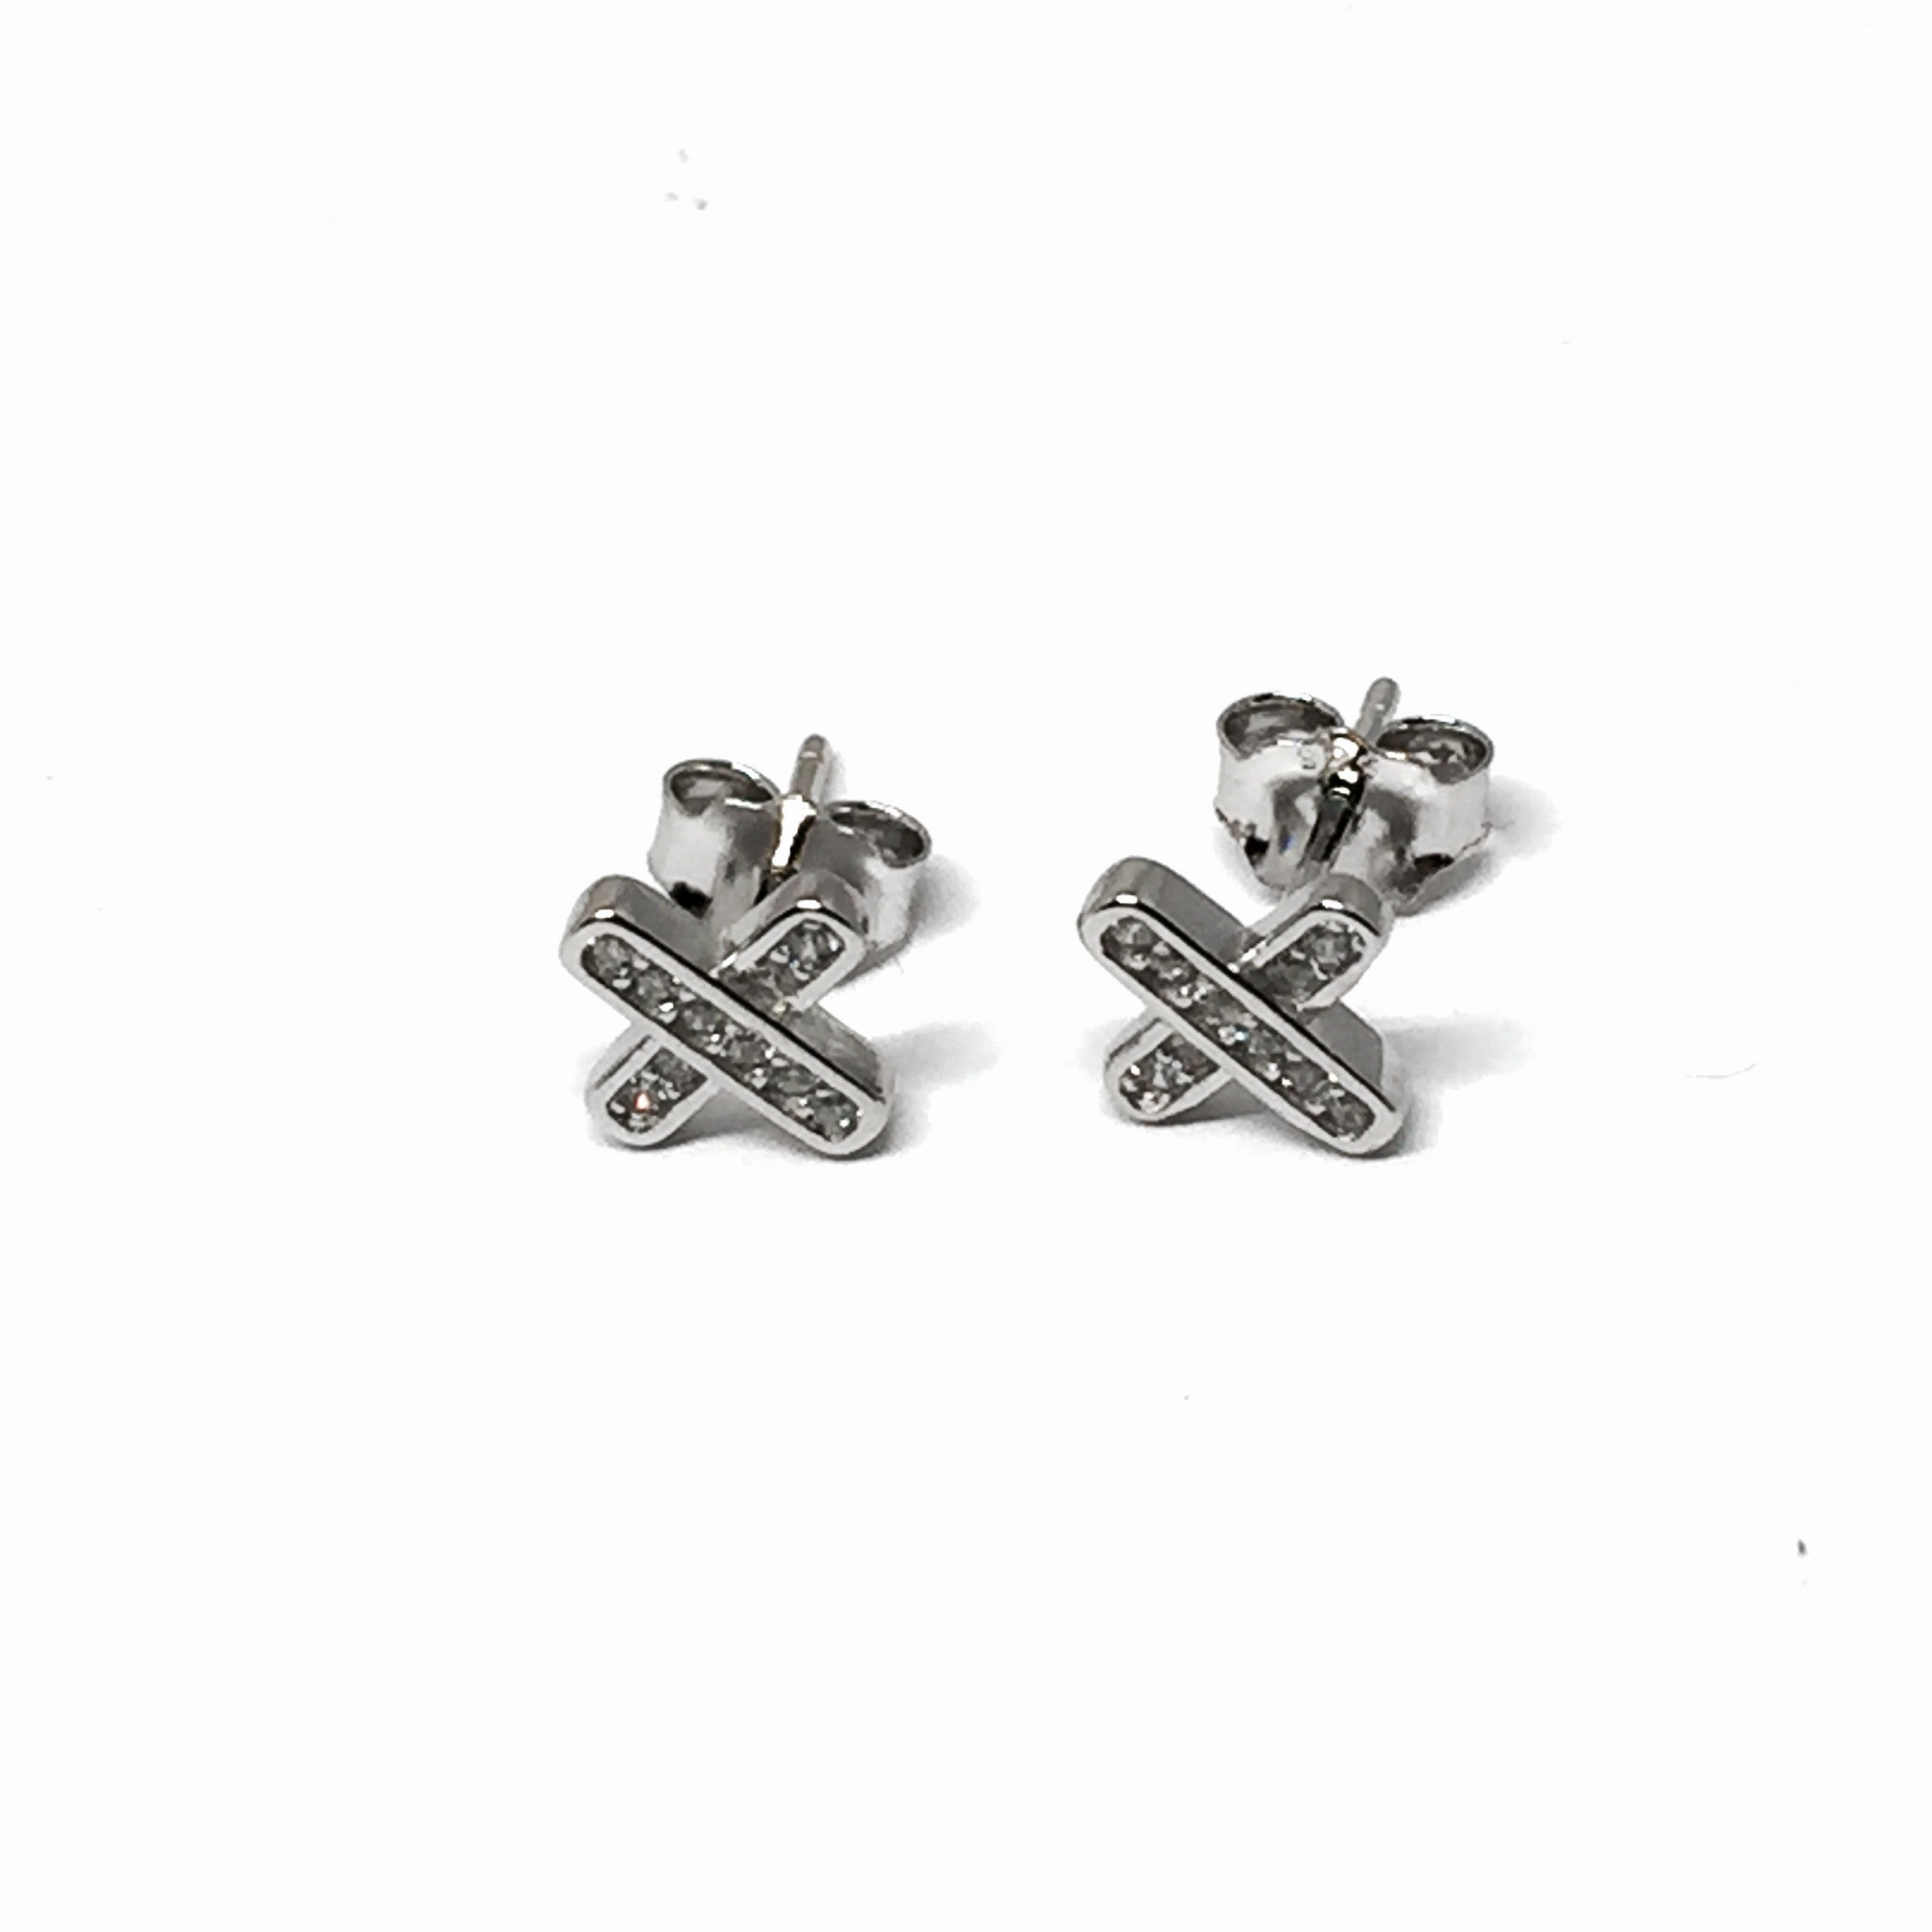 online spo sterling shop silver stud earrings thailand thailan products ball stardust handmade uk